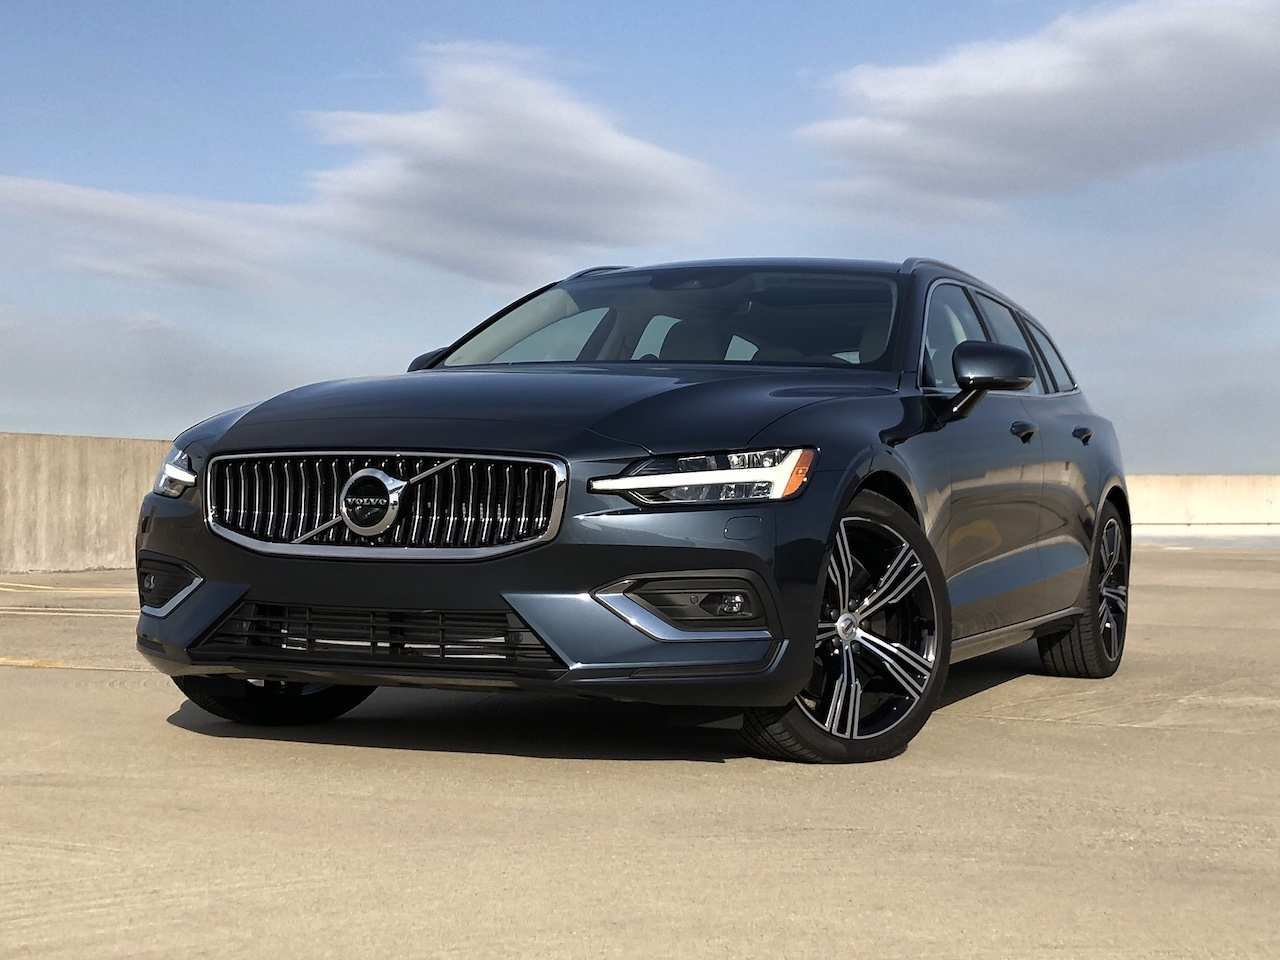 15 All New Volvo V60 2019 Redesign And Review